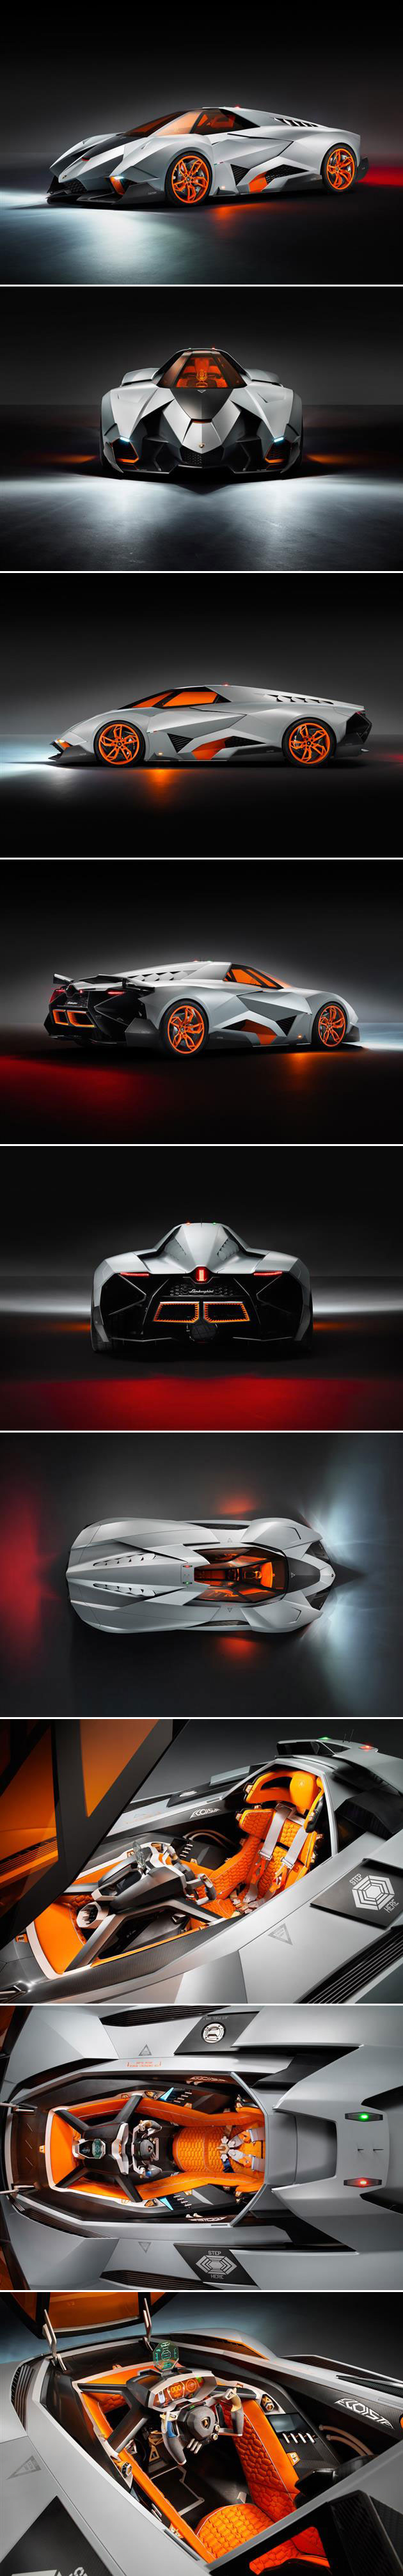 Single-Seat Lamborghini Egoista Has Jet Fighter Cockpit, Complete with Heads-Up Display